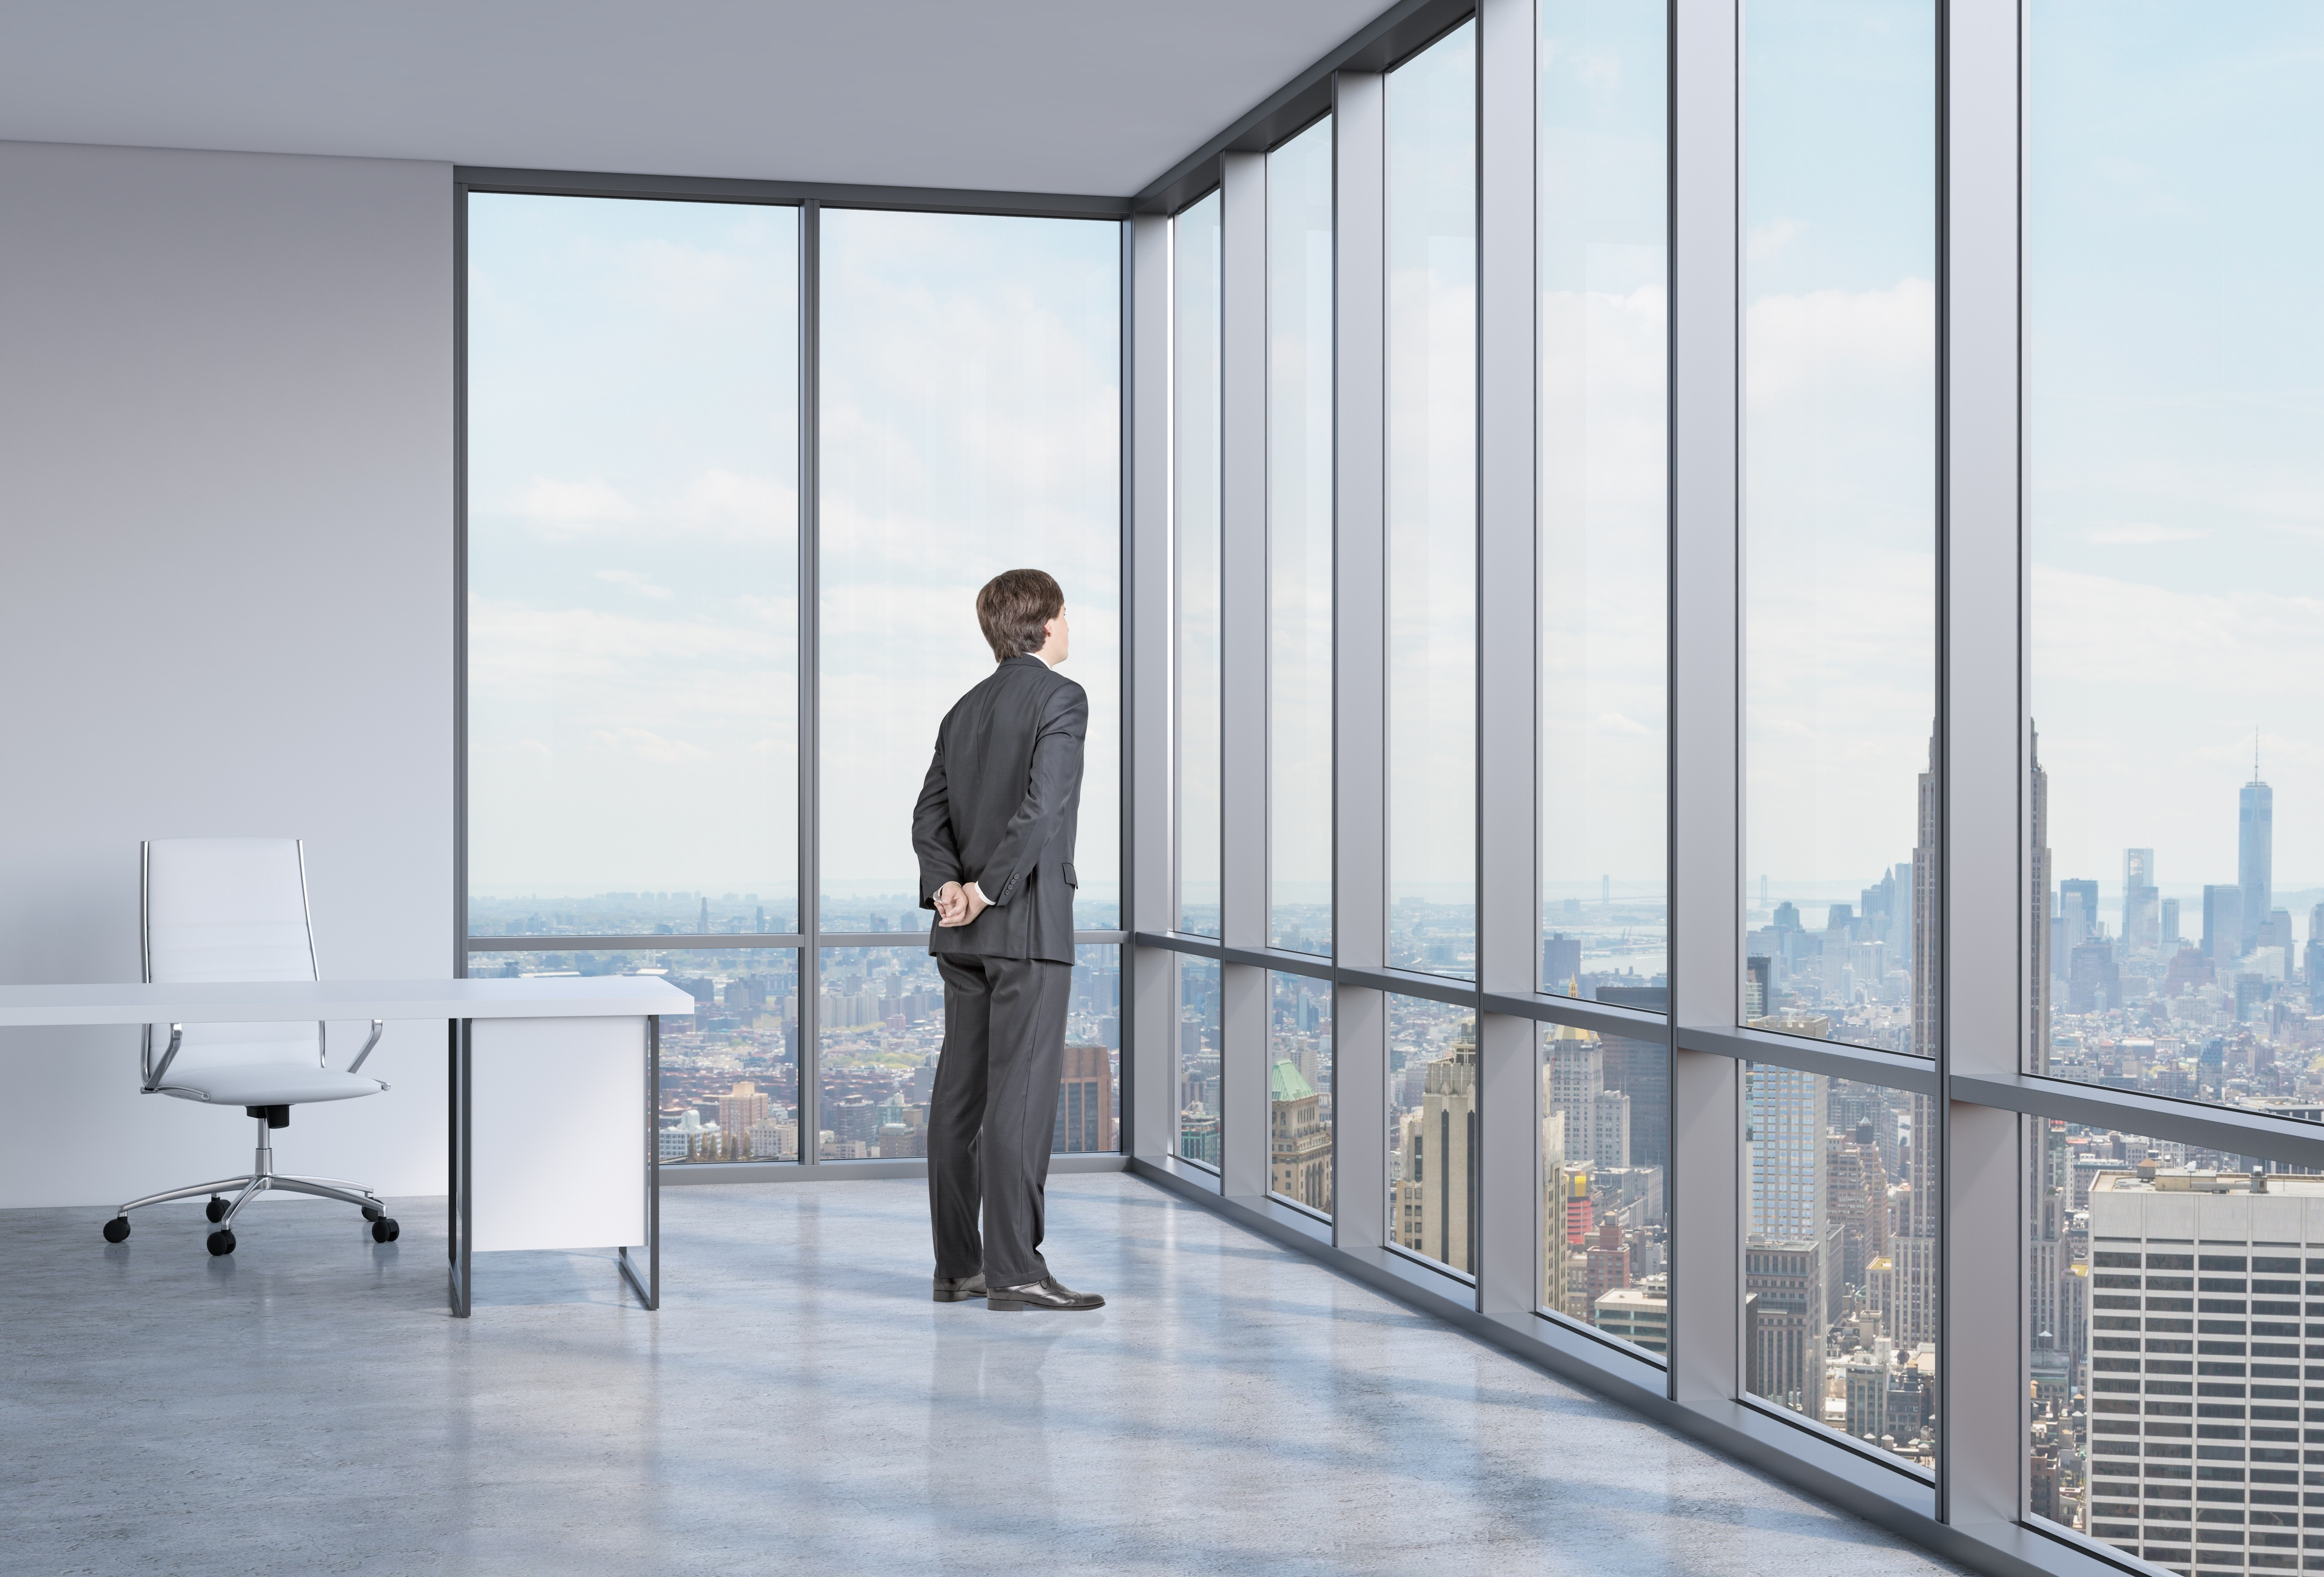 To Succeed Midsize Enterprise CIOs Need To Become Chief Digital Officers